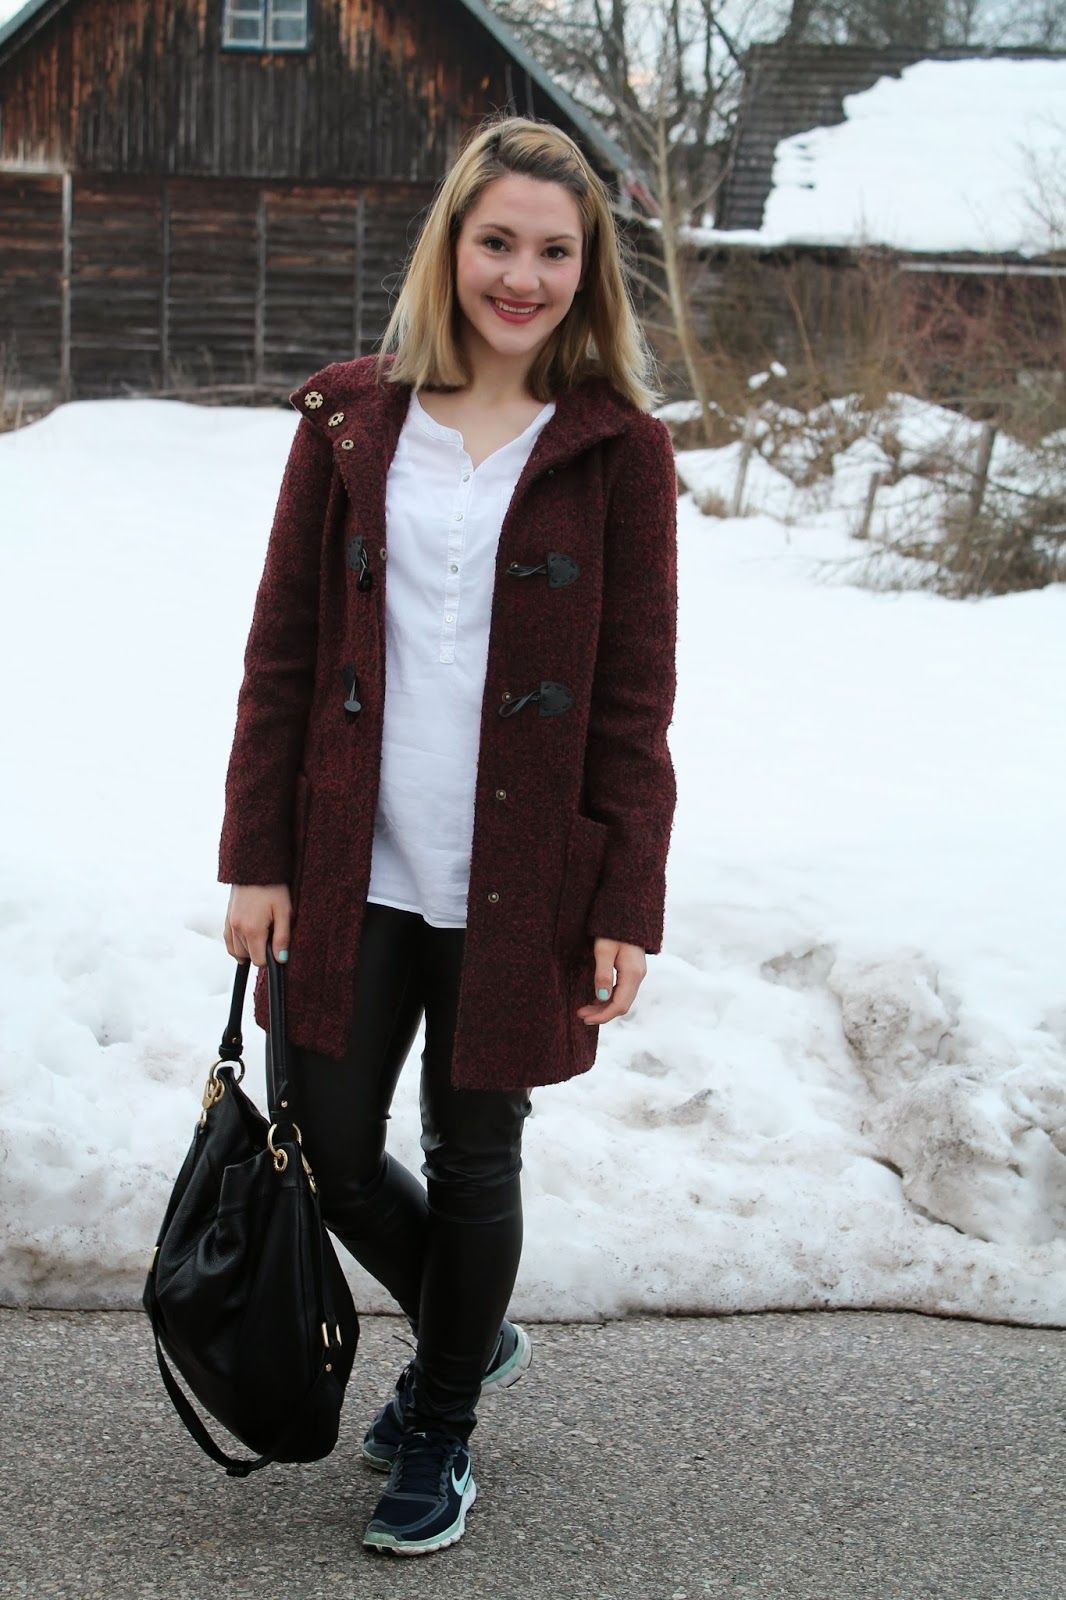 Fashionblogger Austria Österreich Kärnten Carinthia Blogger Coat Red Boucle Orsay Blouse white Esprit Leather Pants Pimkie Nike Free 5.0 Marc by Marc Jacobs Hillier Hobo Bag Hipster Look